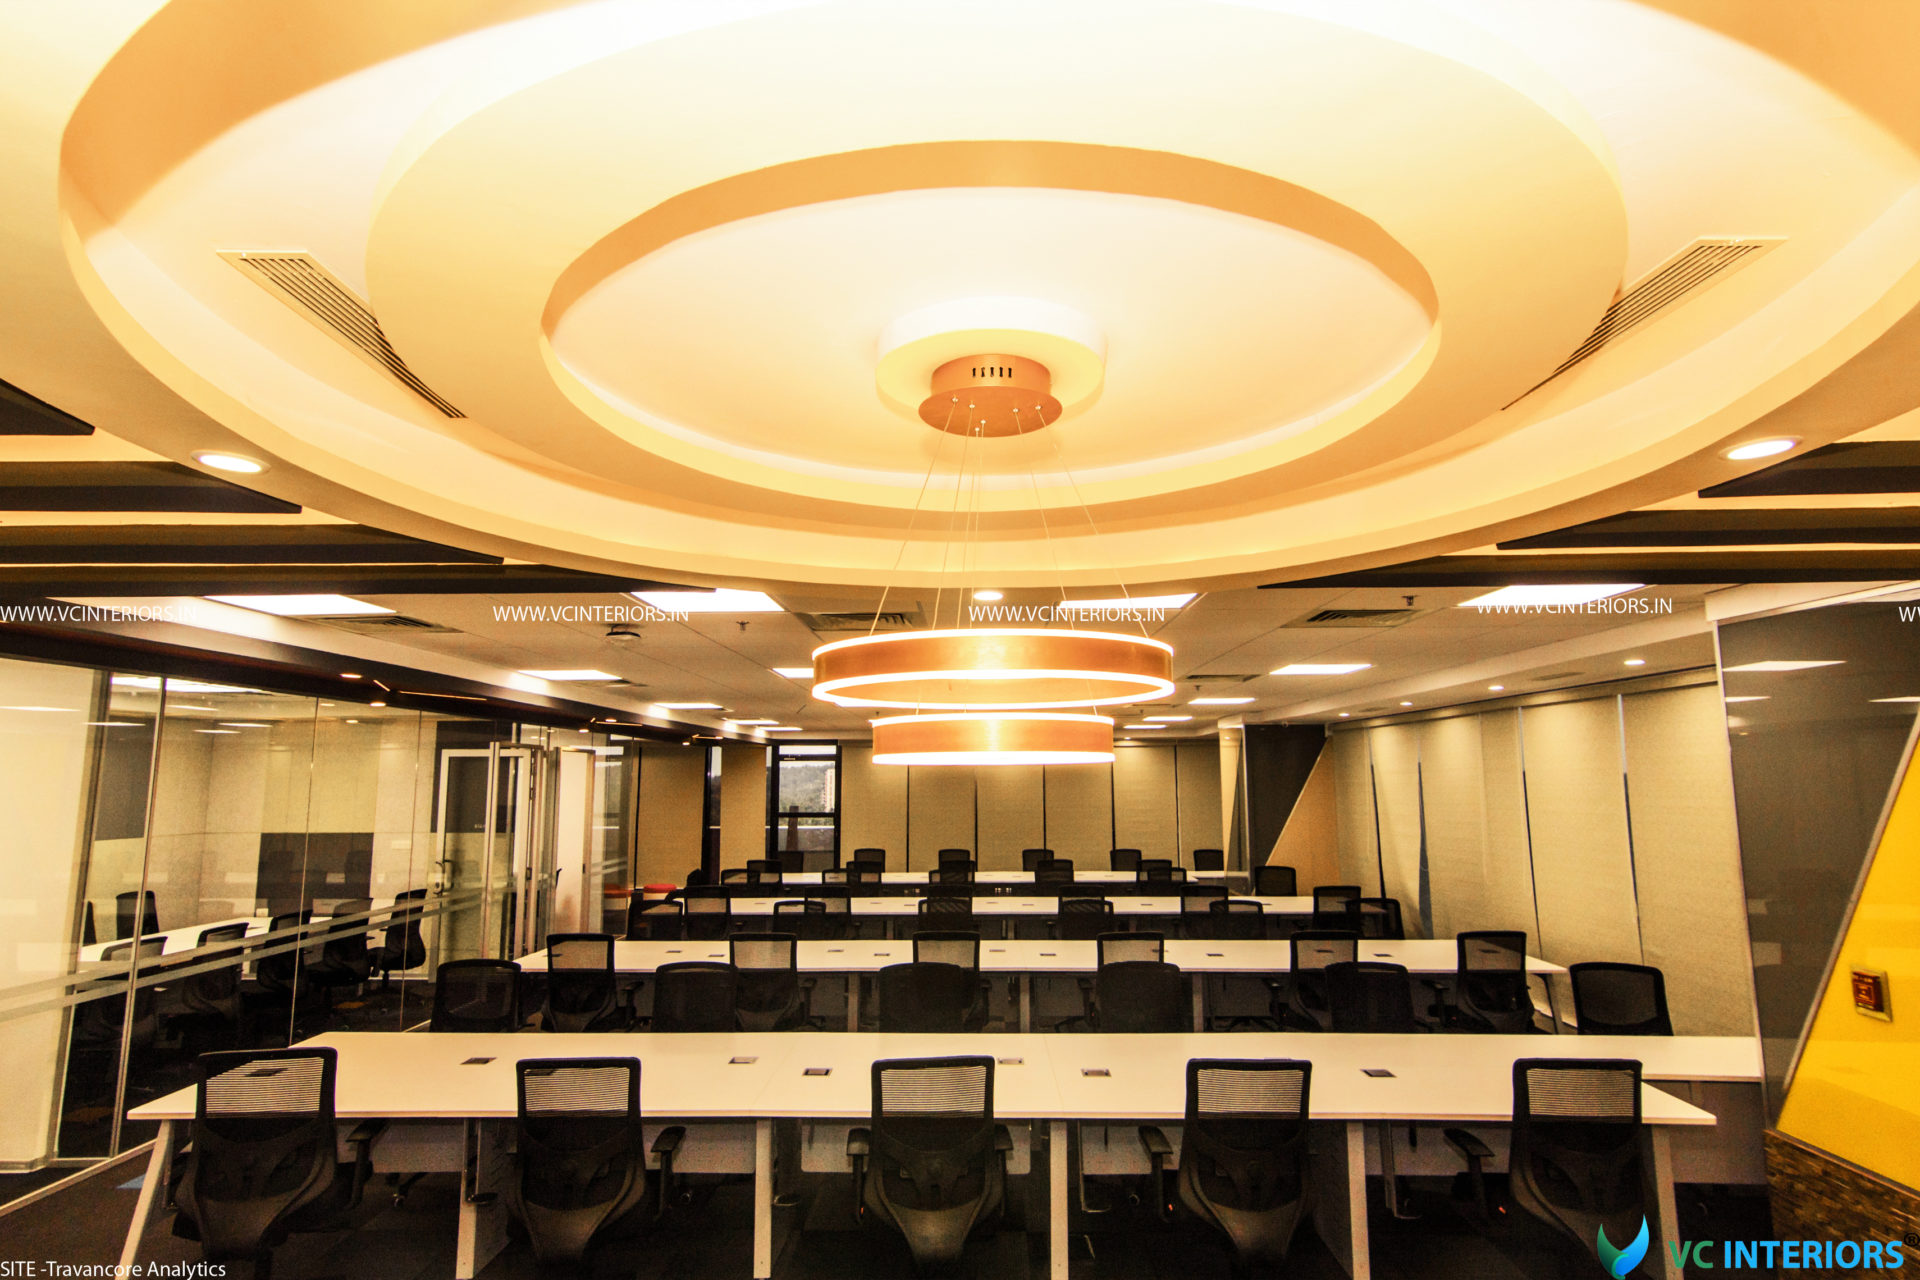 Commercial Office Interiors - VC Interiors